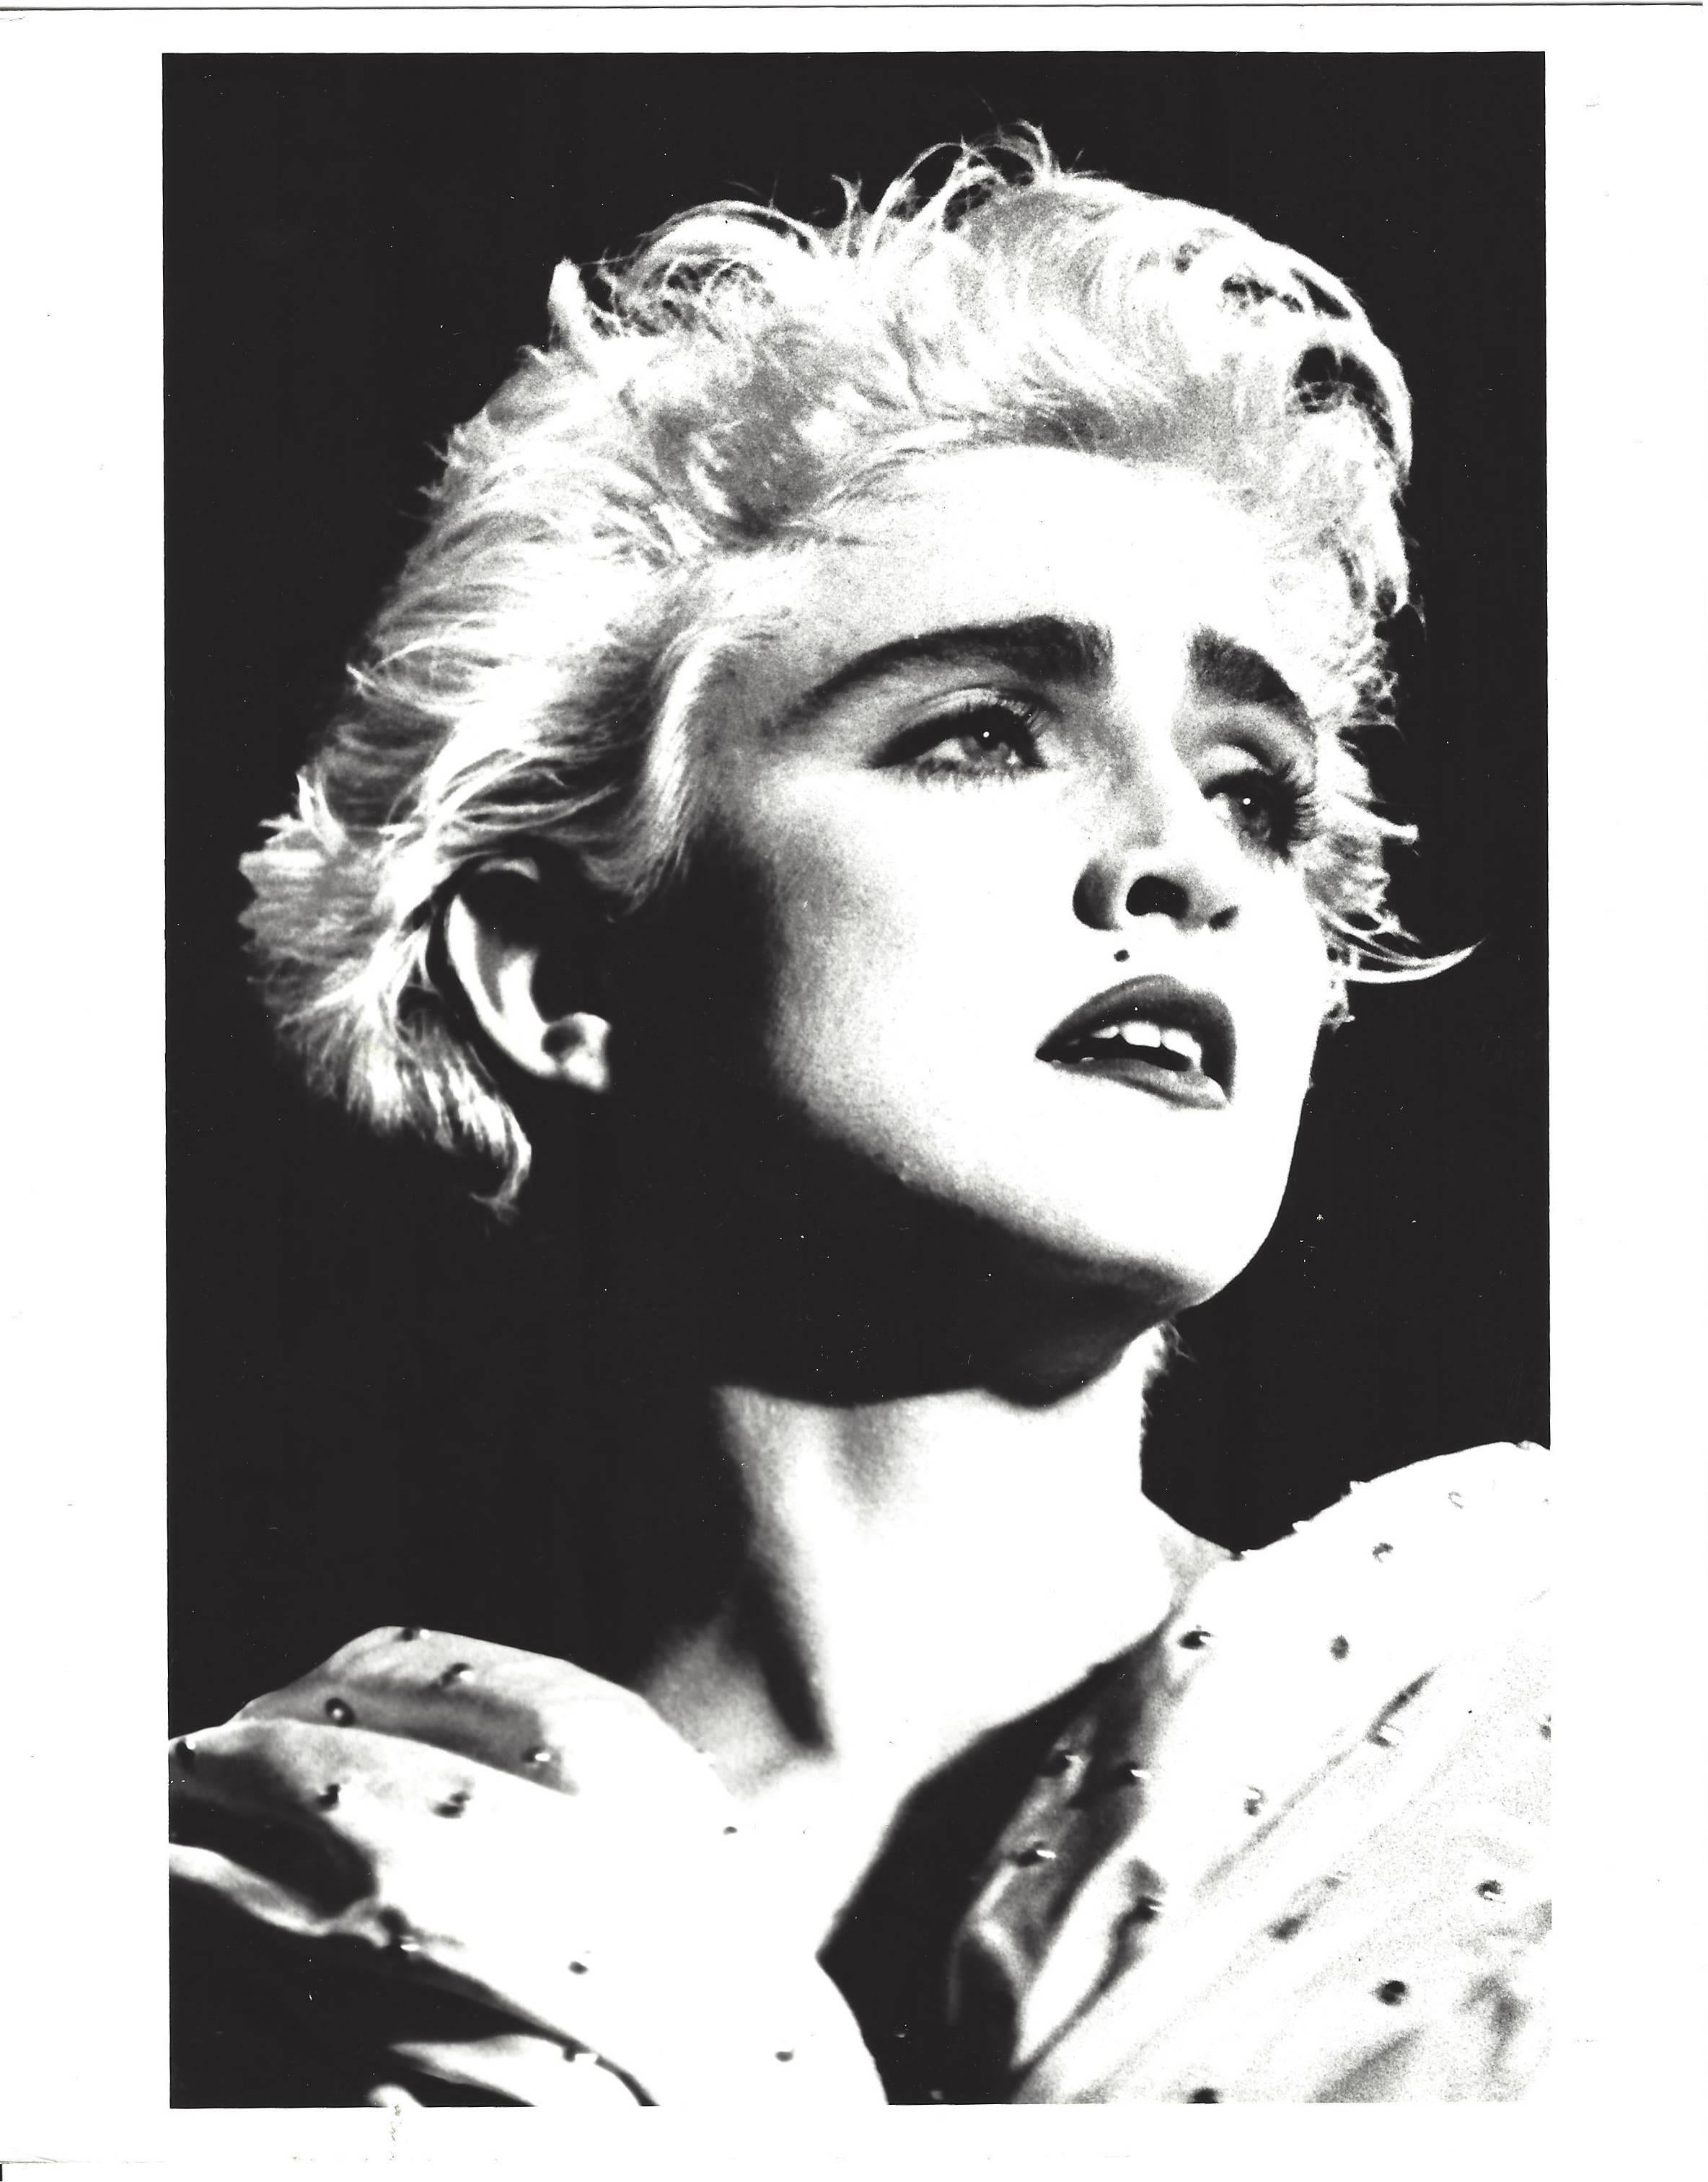 Unknown high contrast madonna portrait